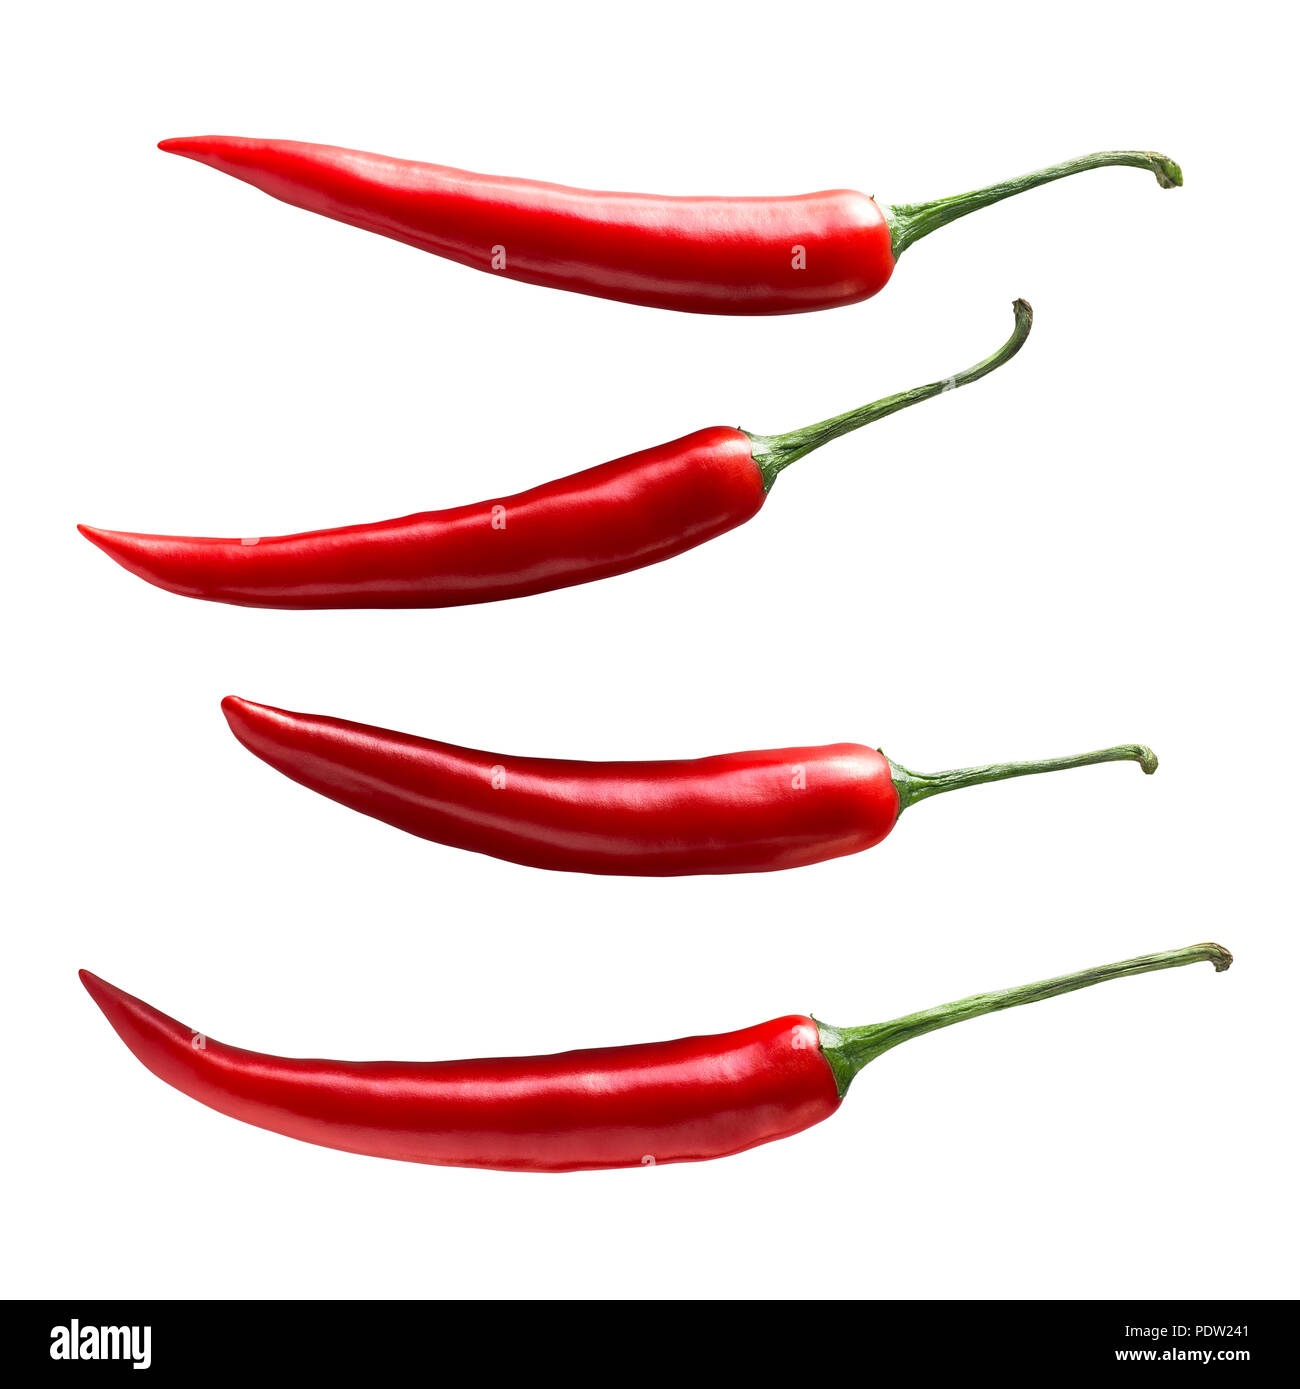 Single chili pepper set isolated on white background as package design element - Stock Image